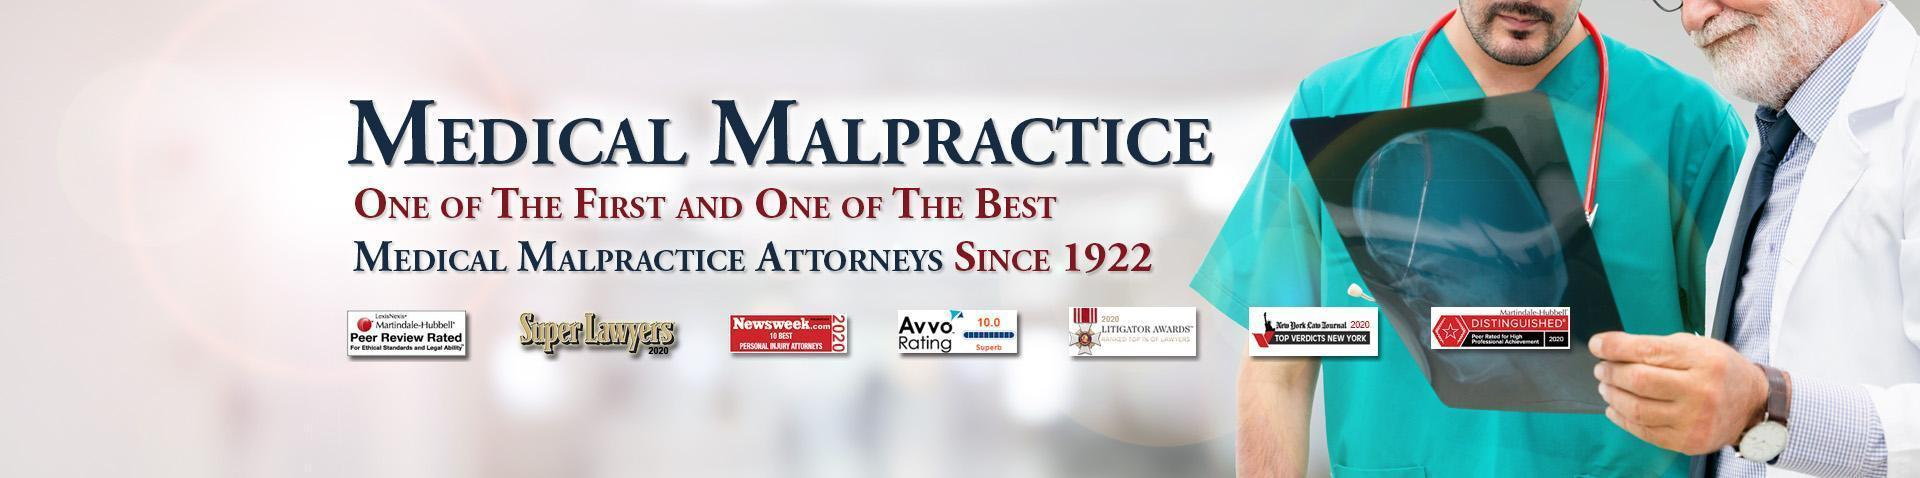 Medical Malpractice Banner